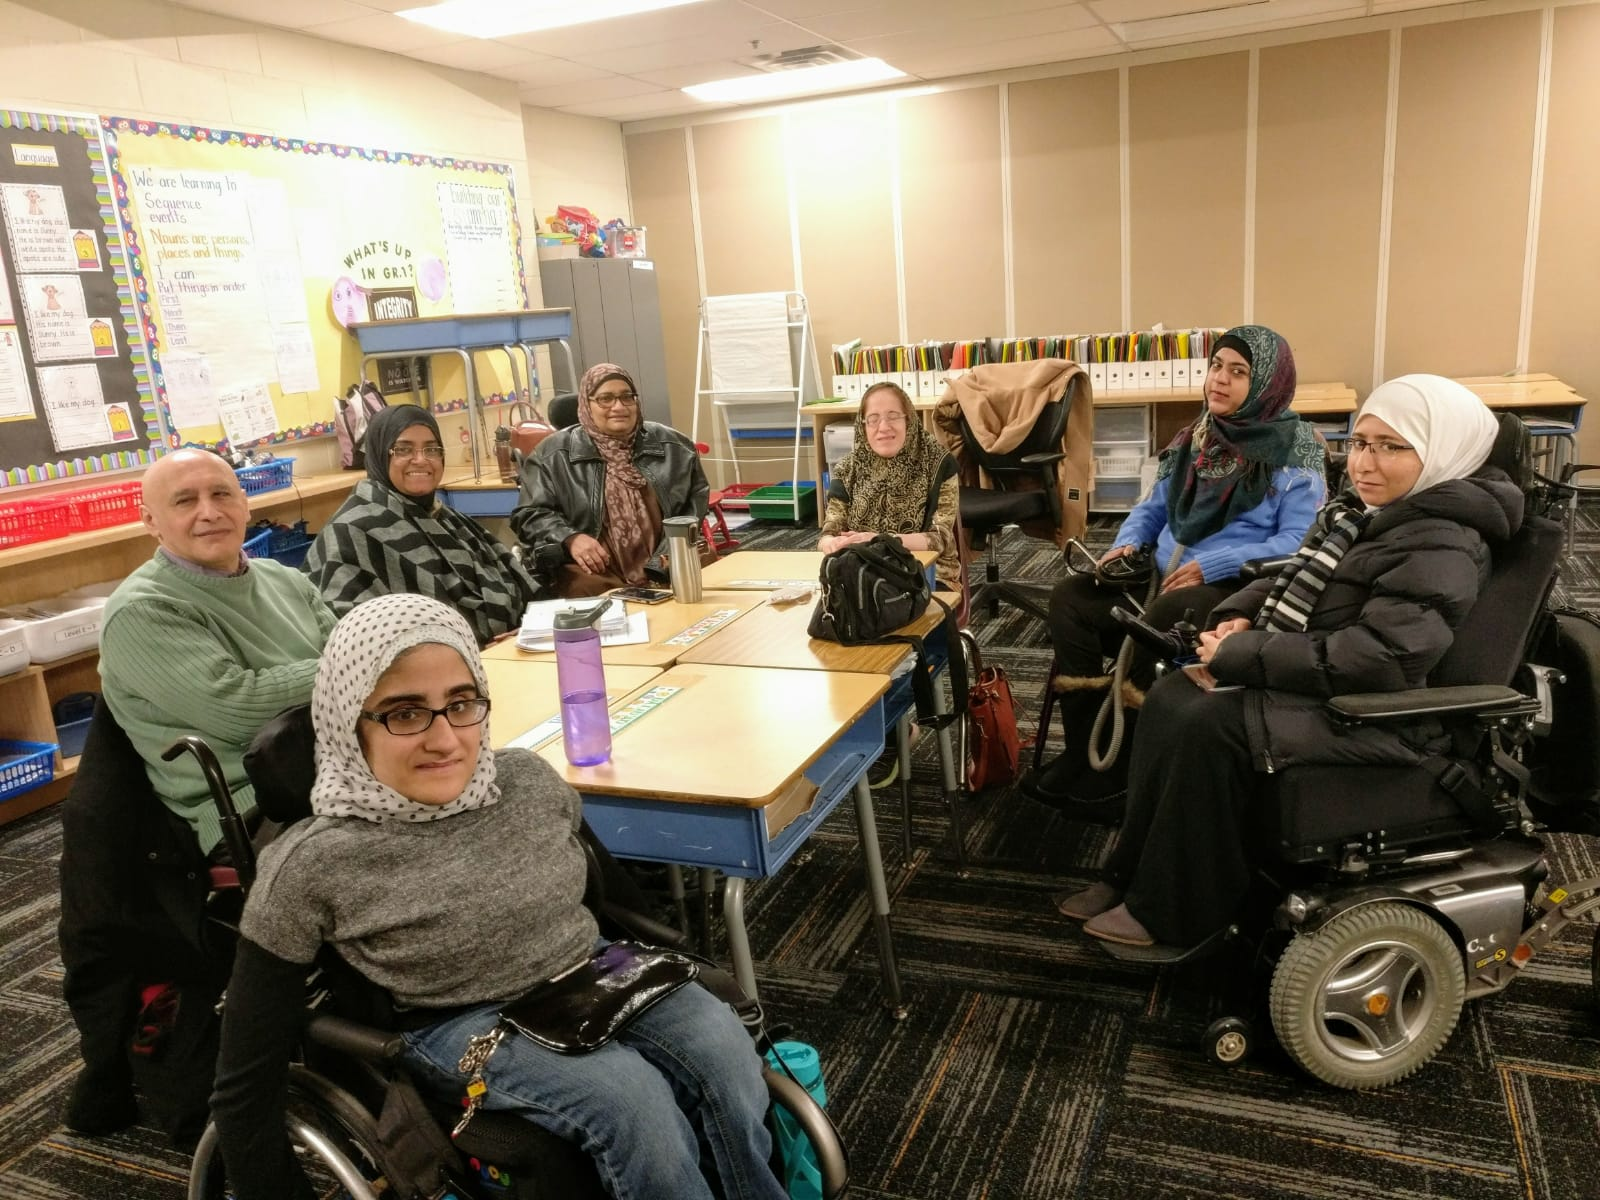 Six females and one male sitting in wheelchairs around tables.